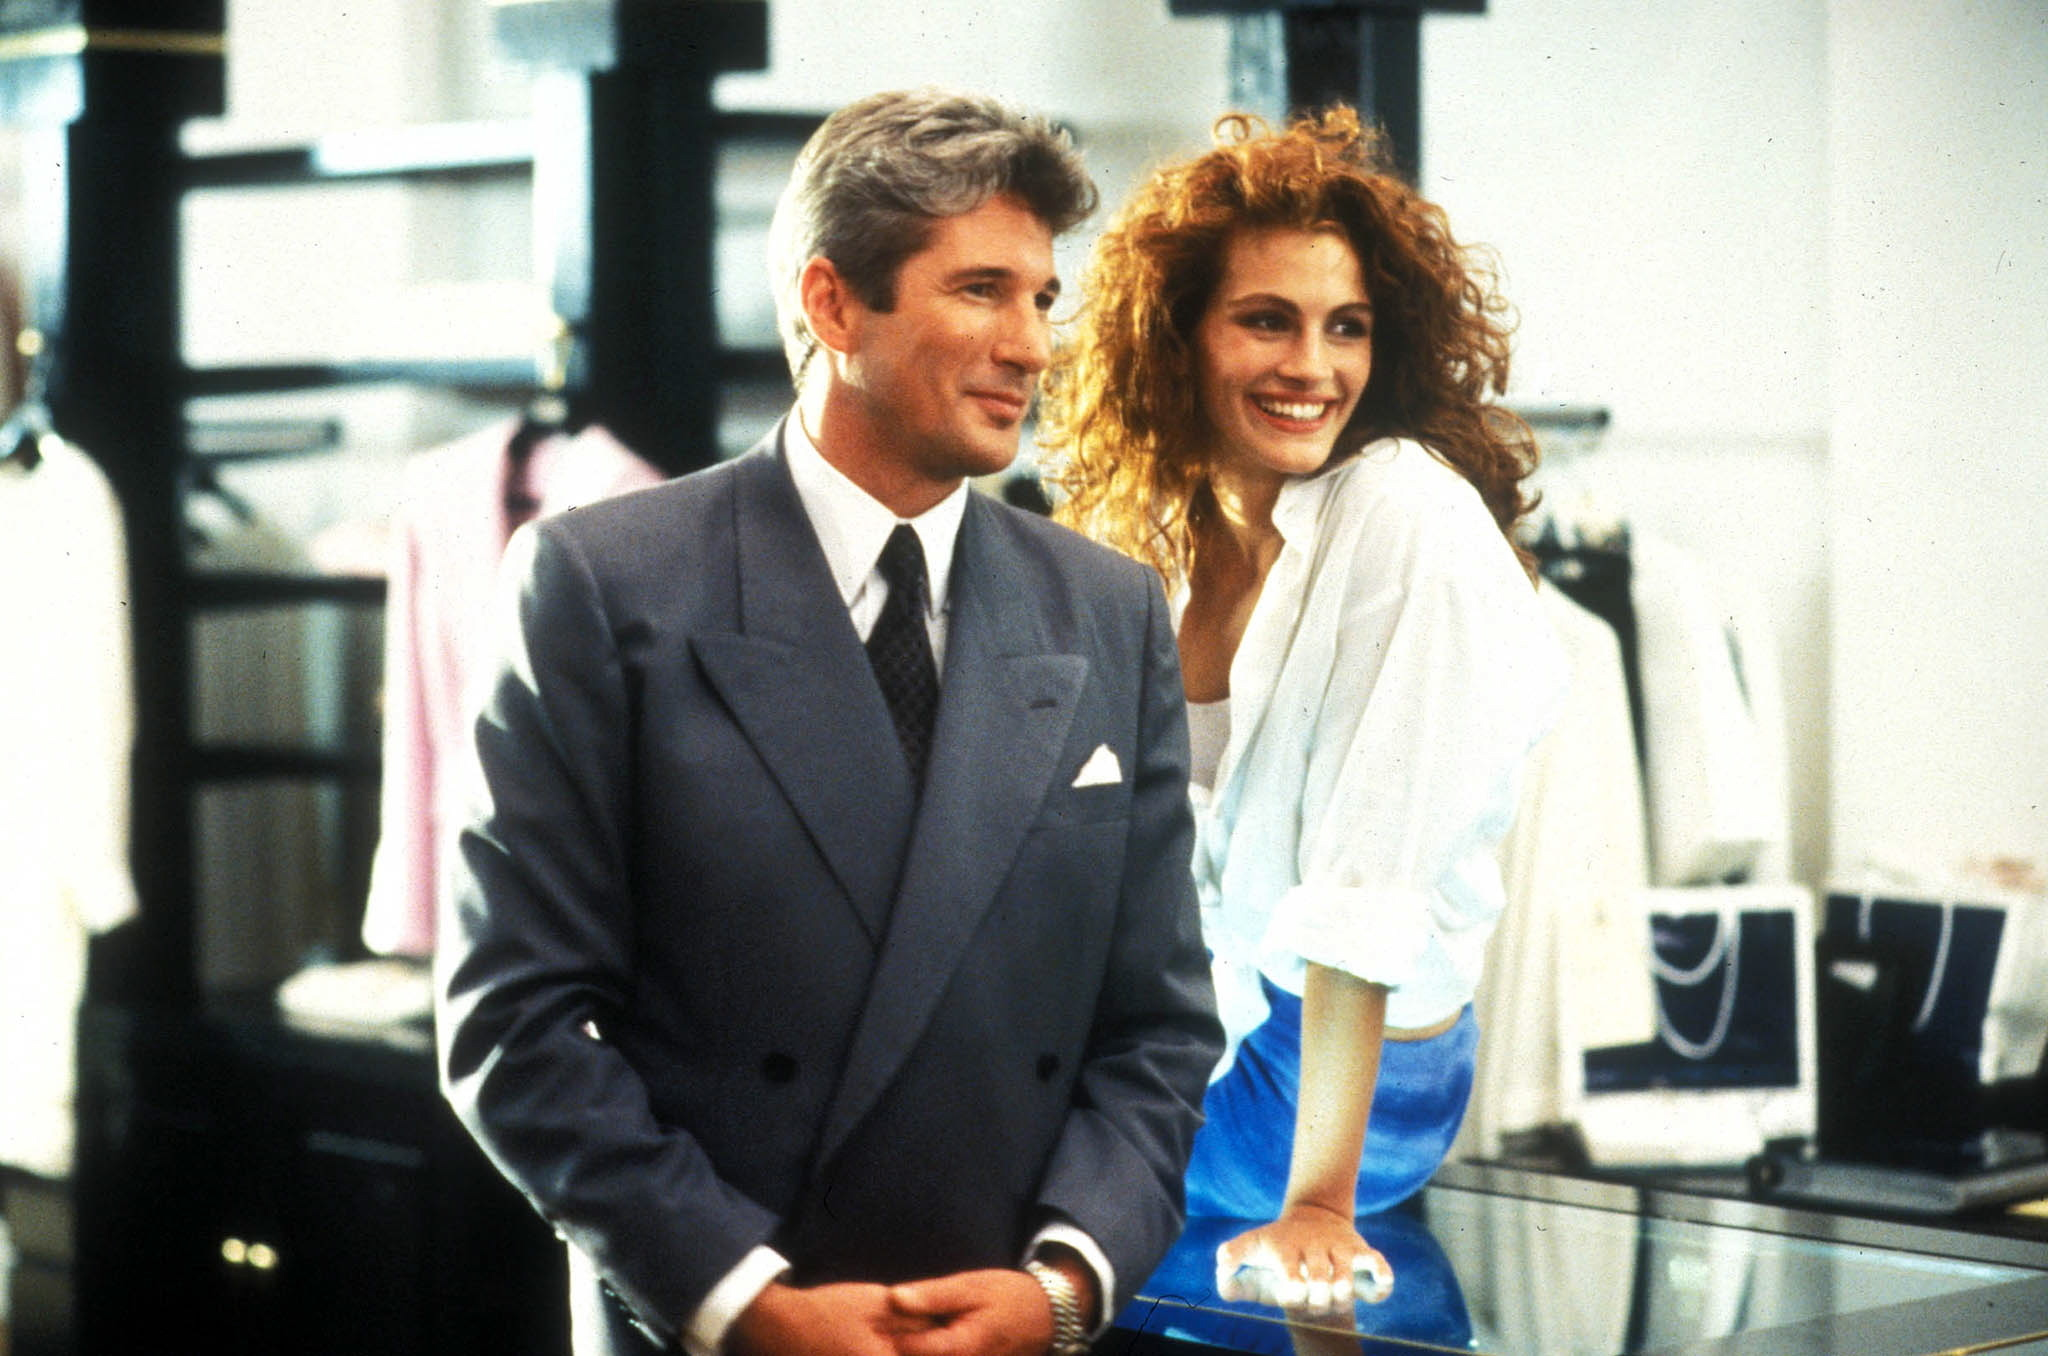 Romantic movie: Pretty Woman